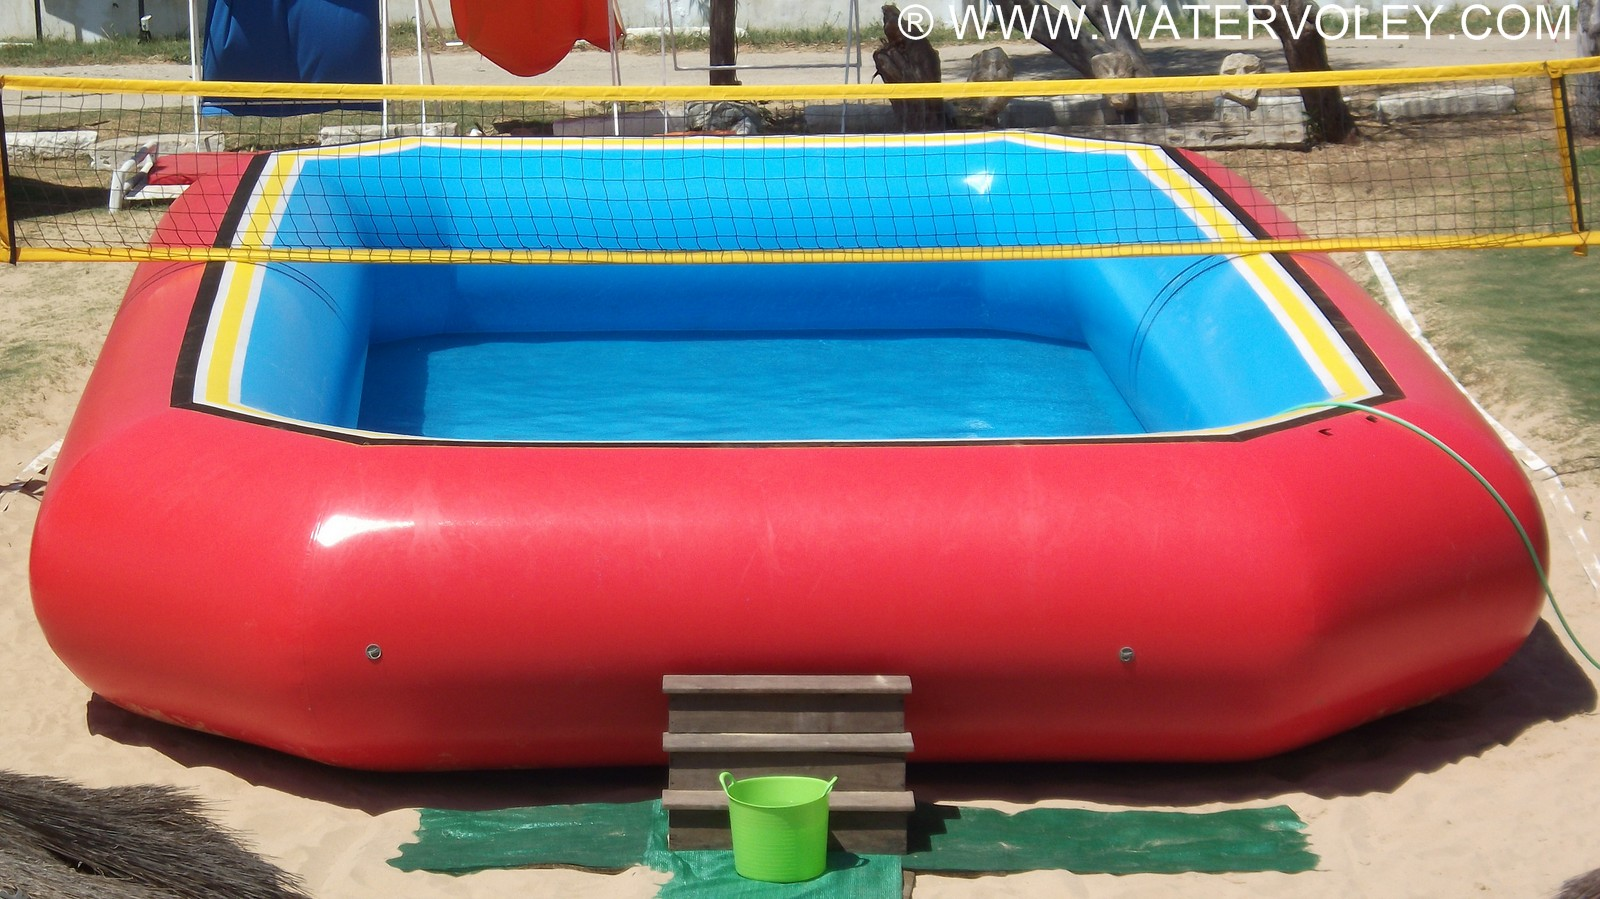 Las piscinas inflables un parque infantil al aire libre for Piscina inflable decathlon